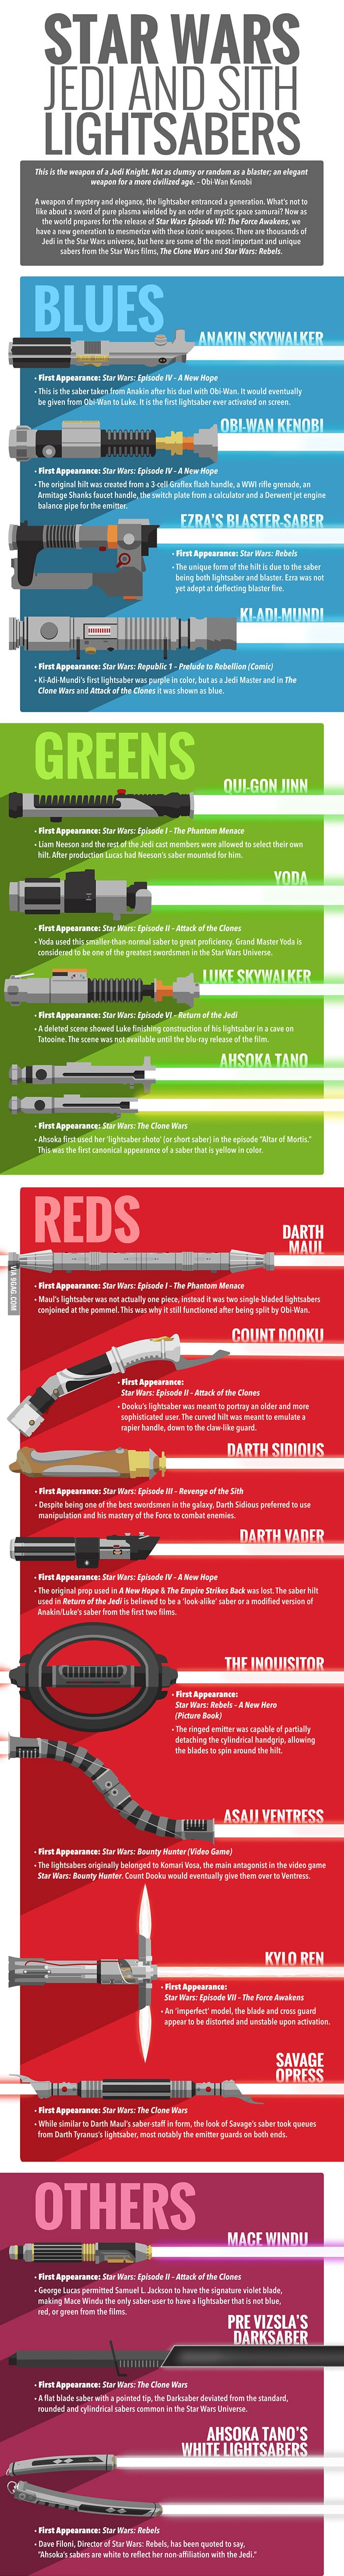 The History Of Star Wars Lightsabers